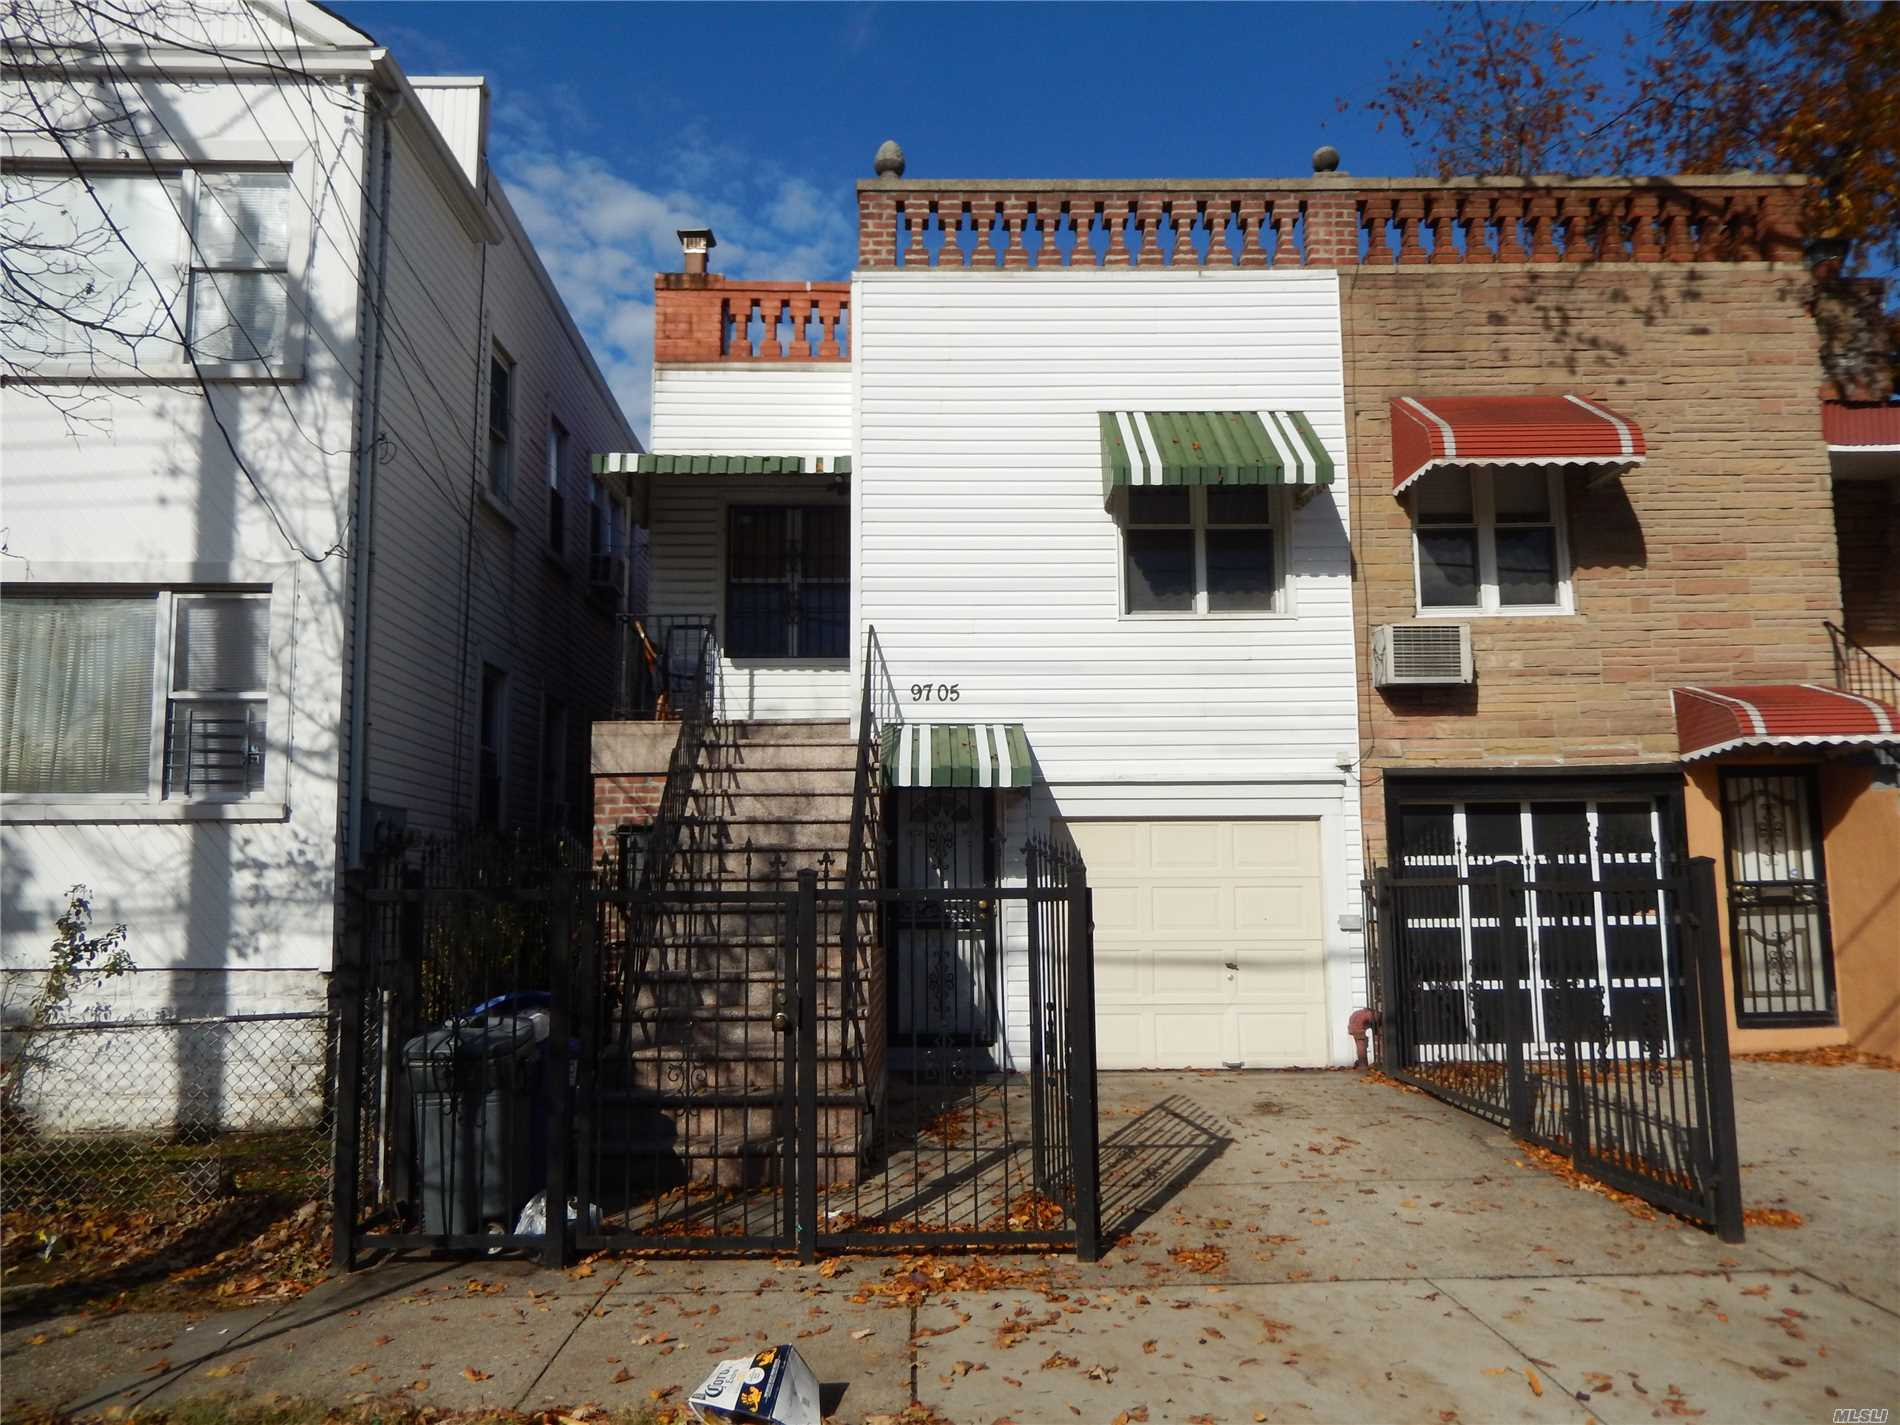 Beautiful well maintained two family home on a quiet tree lines street in the heart of East Elmhurst. Close to all shopping, school and transportation. 15 minutes to Manhattan, walk to LaGuardia Airport, Flushing Bay Boat Marina, Flushing Meadow Park, Citifield, etc... Must see to appreciate.